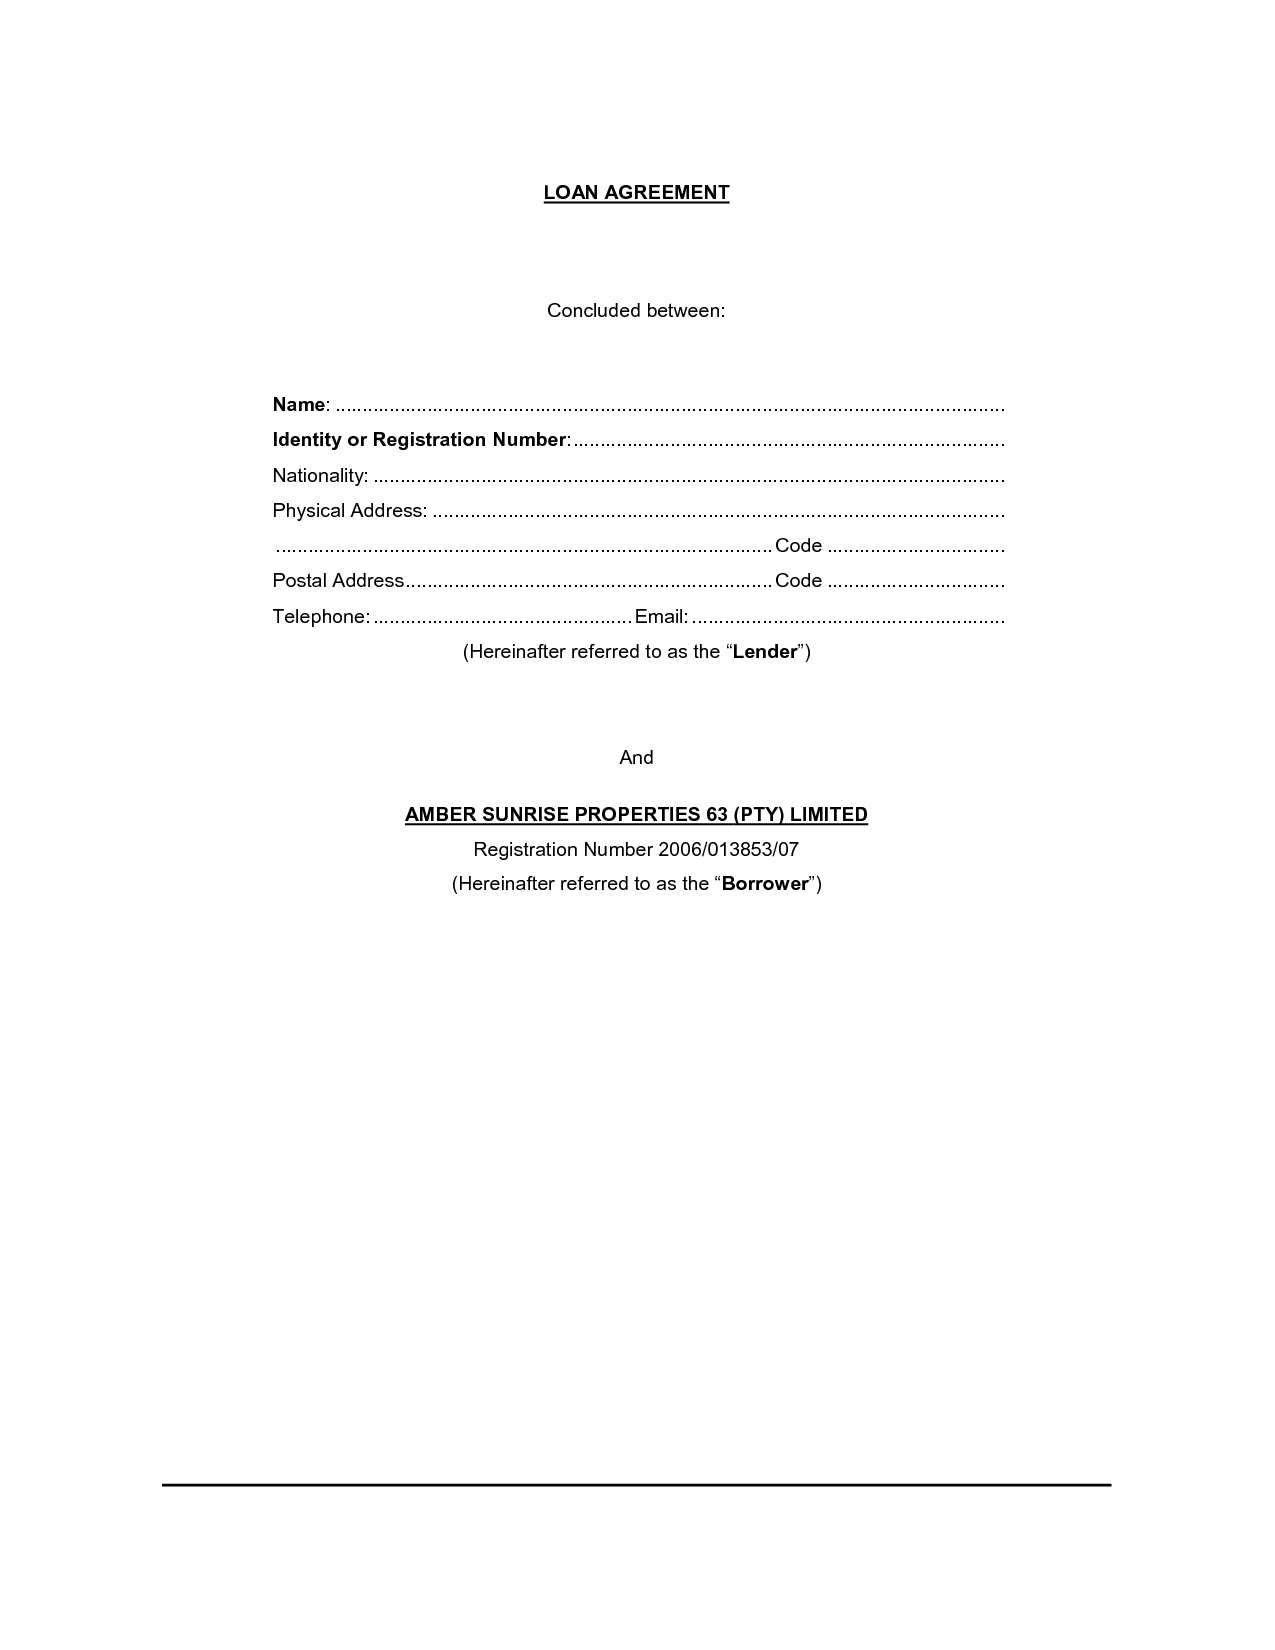 loanagreementtemplatefree simple loan contract – Private Loan Agreement Template